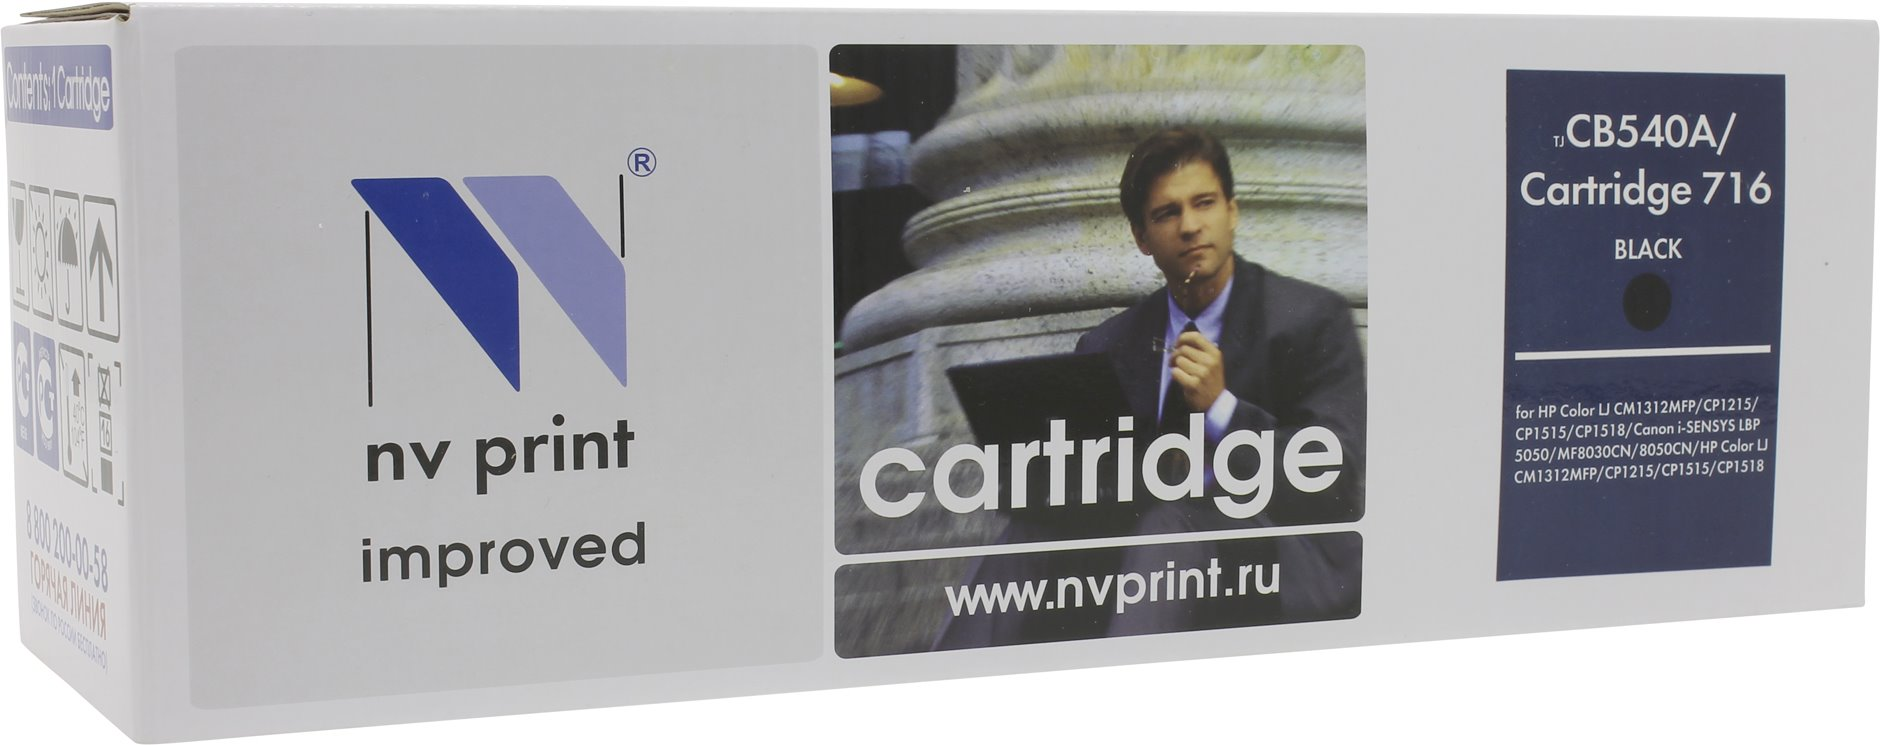 картинка Картридж NV-Print для HP Color LaserJet CP1215/1515/ CM1312 Black, CB540A